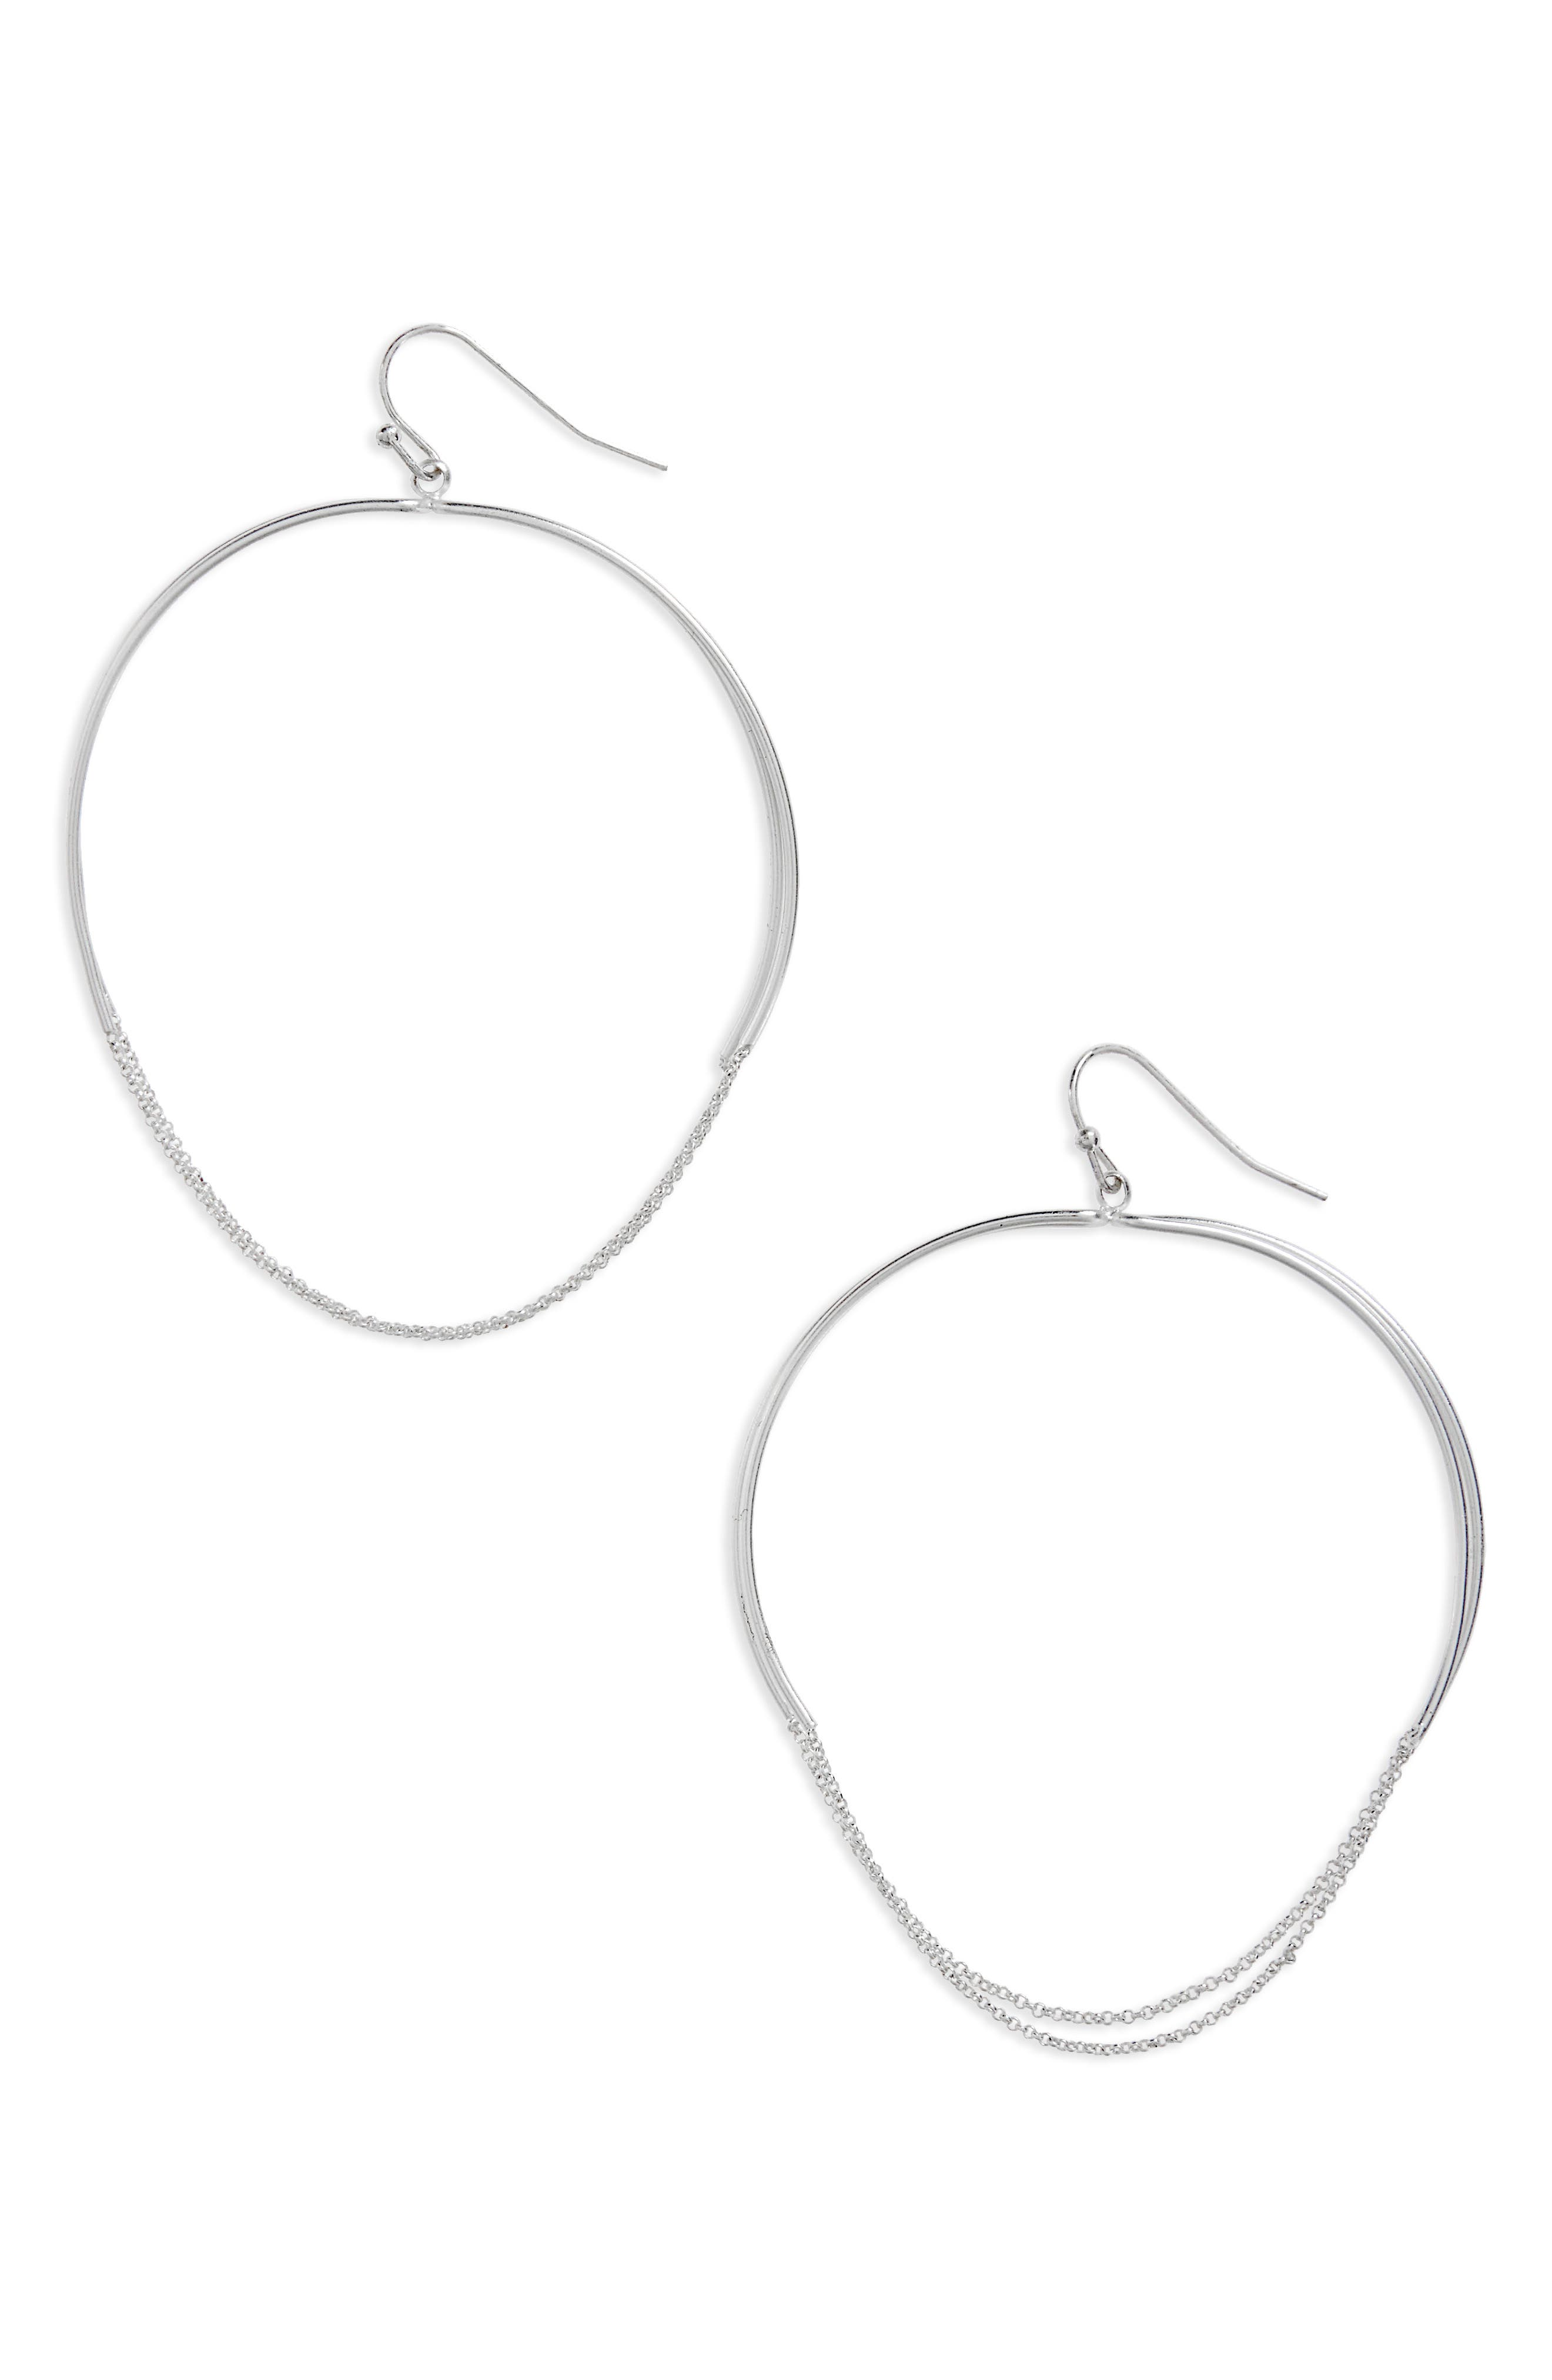 Large Chain Detail Hoop Earrings,                             Main thumbnail 1, color,                             SILVER